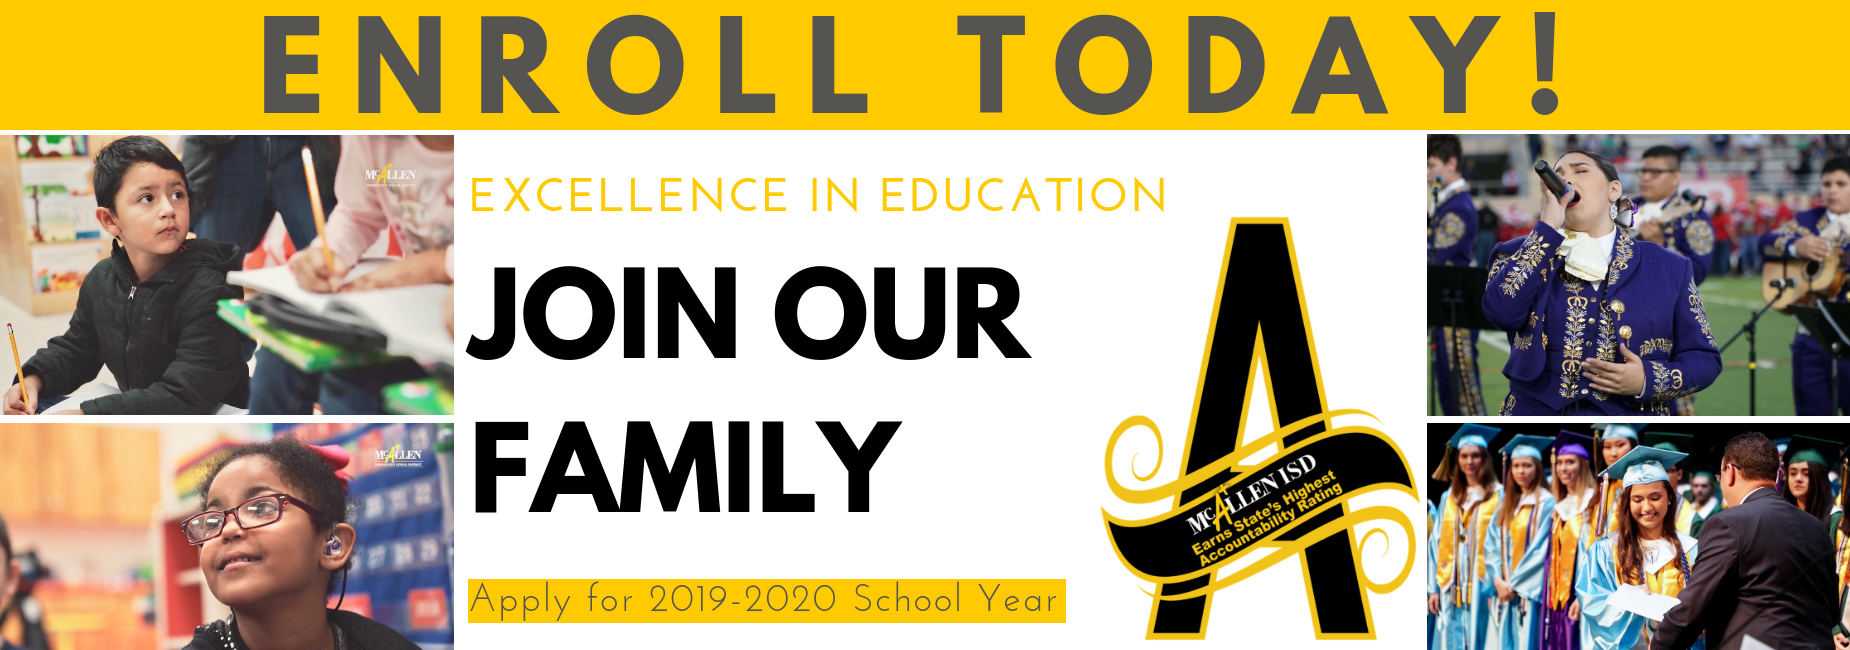 Join our family!